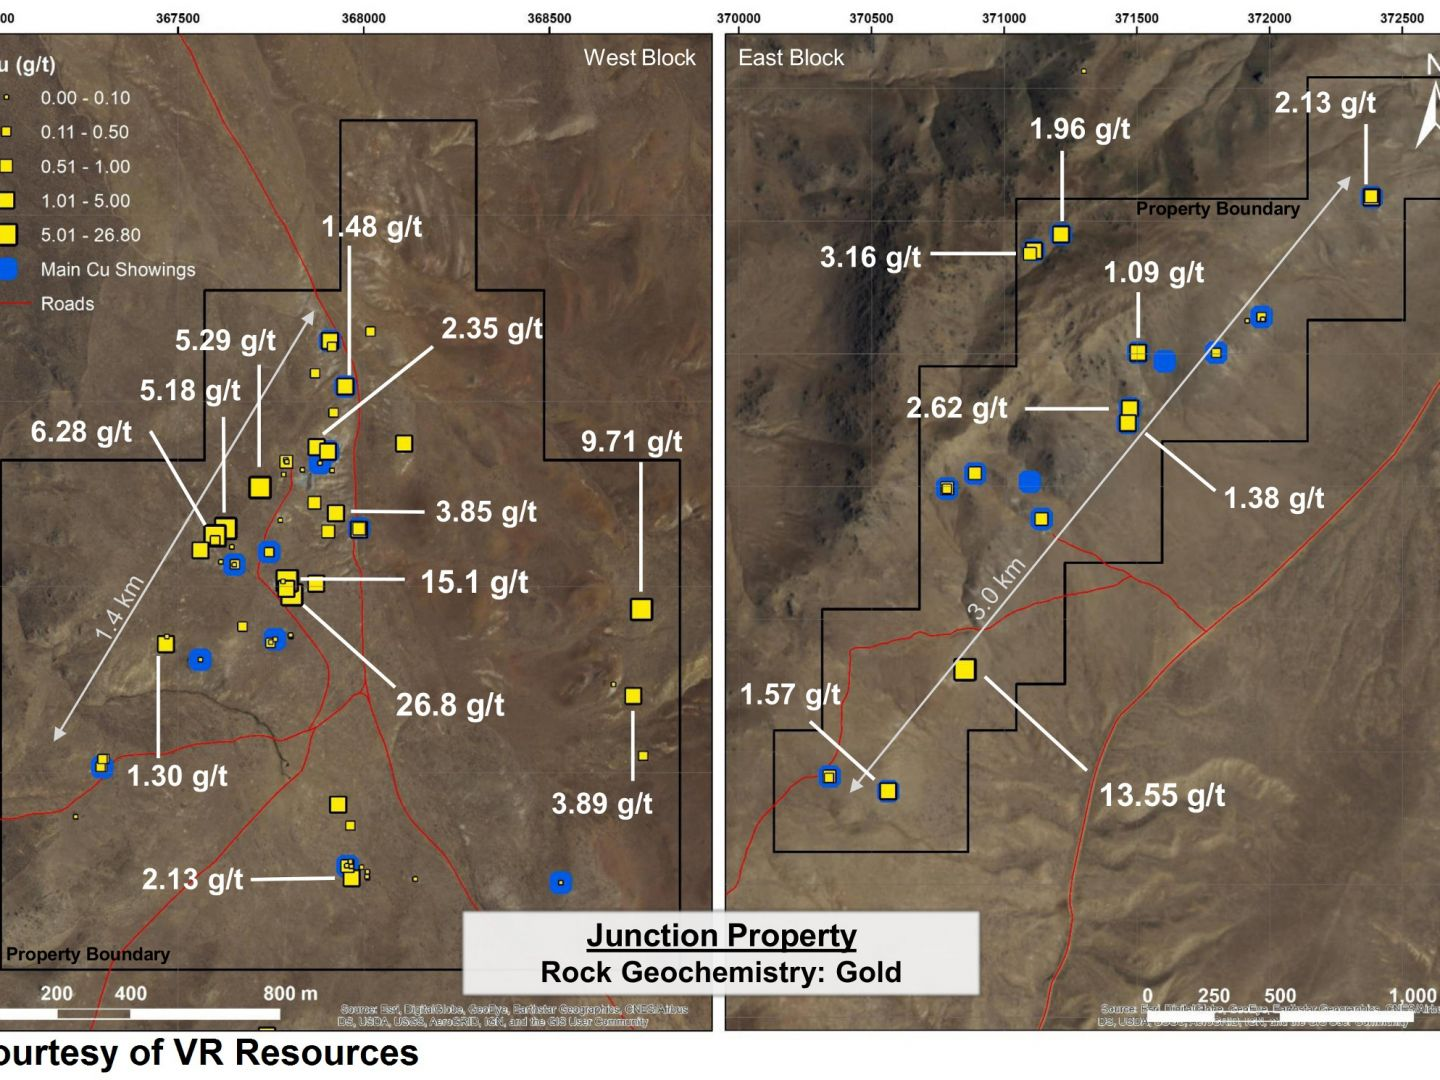 Junction Property - Rock Geochemistry: Gold